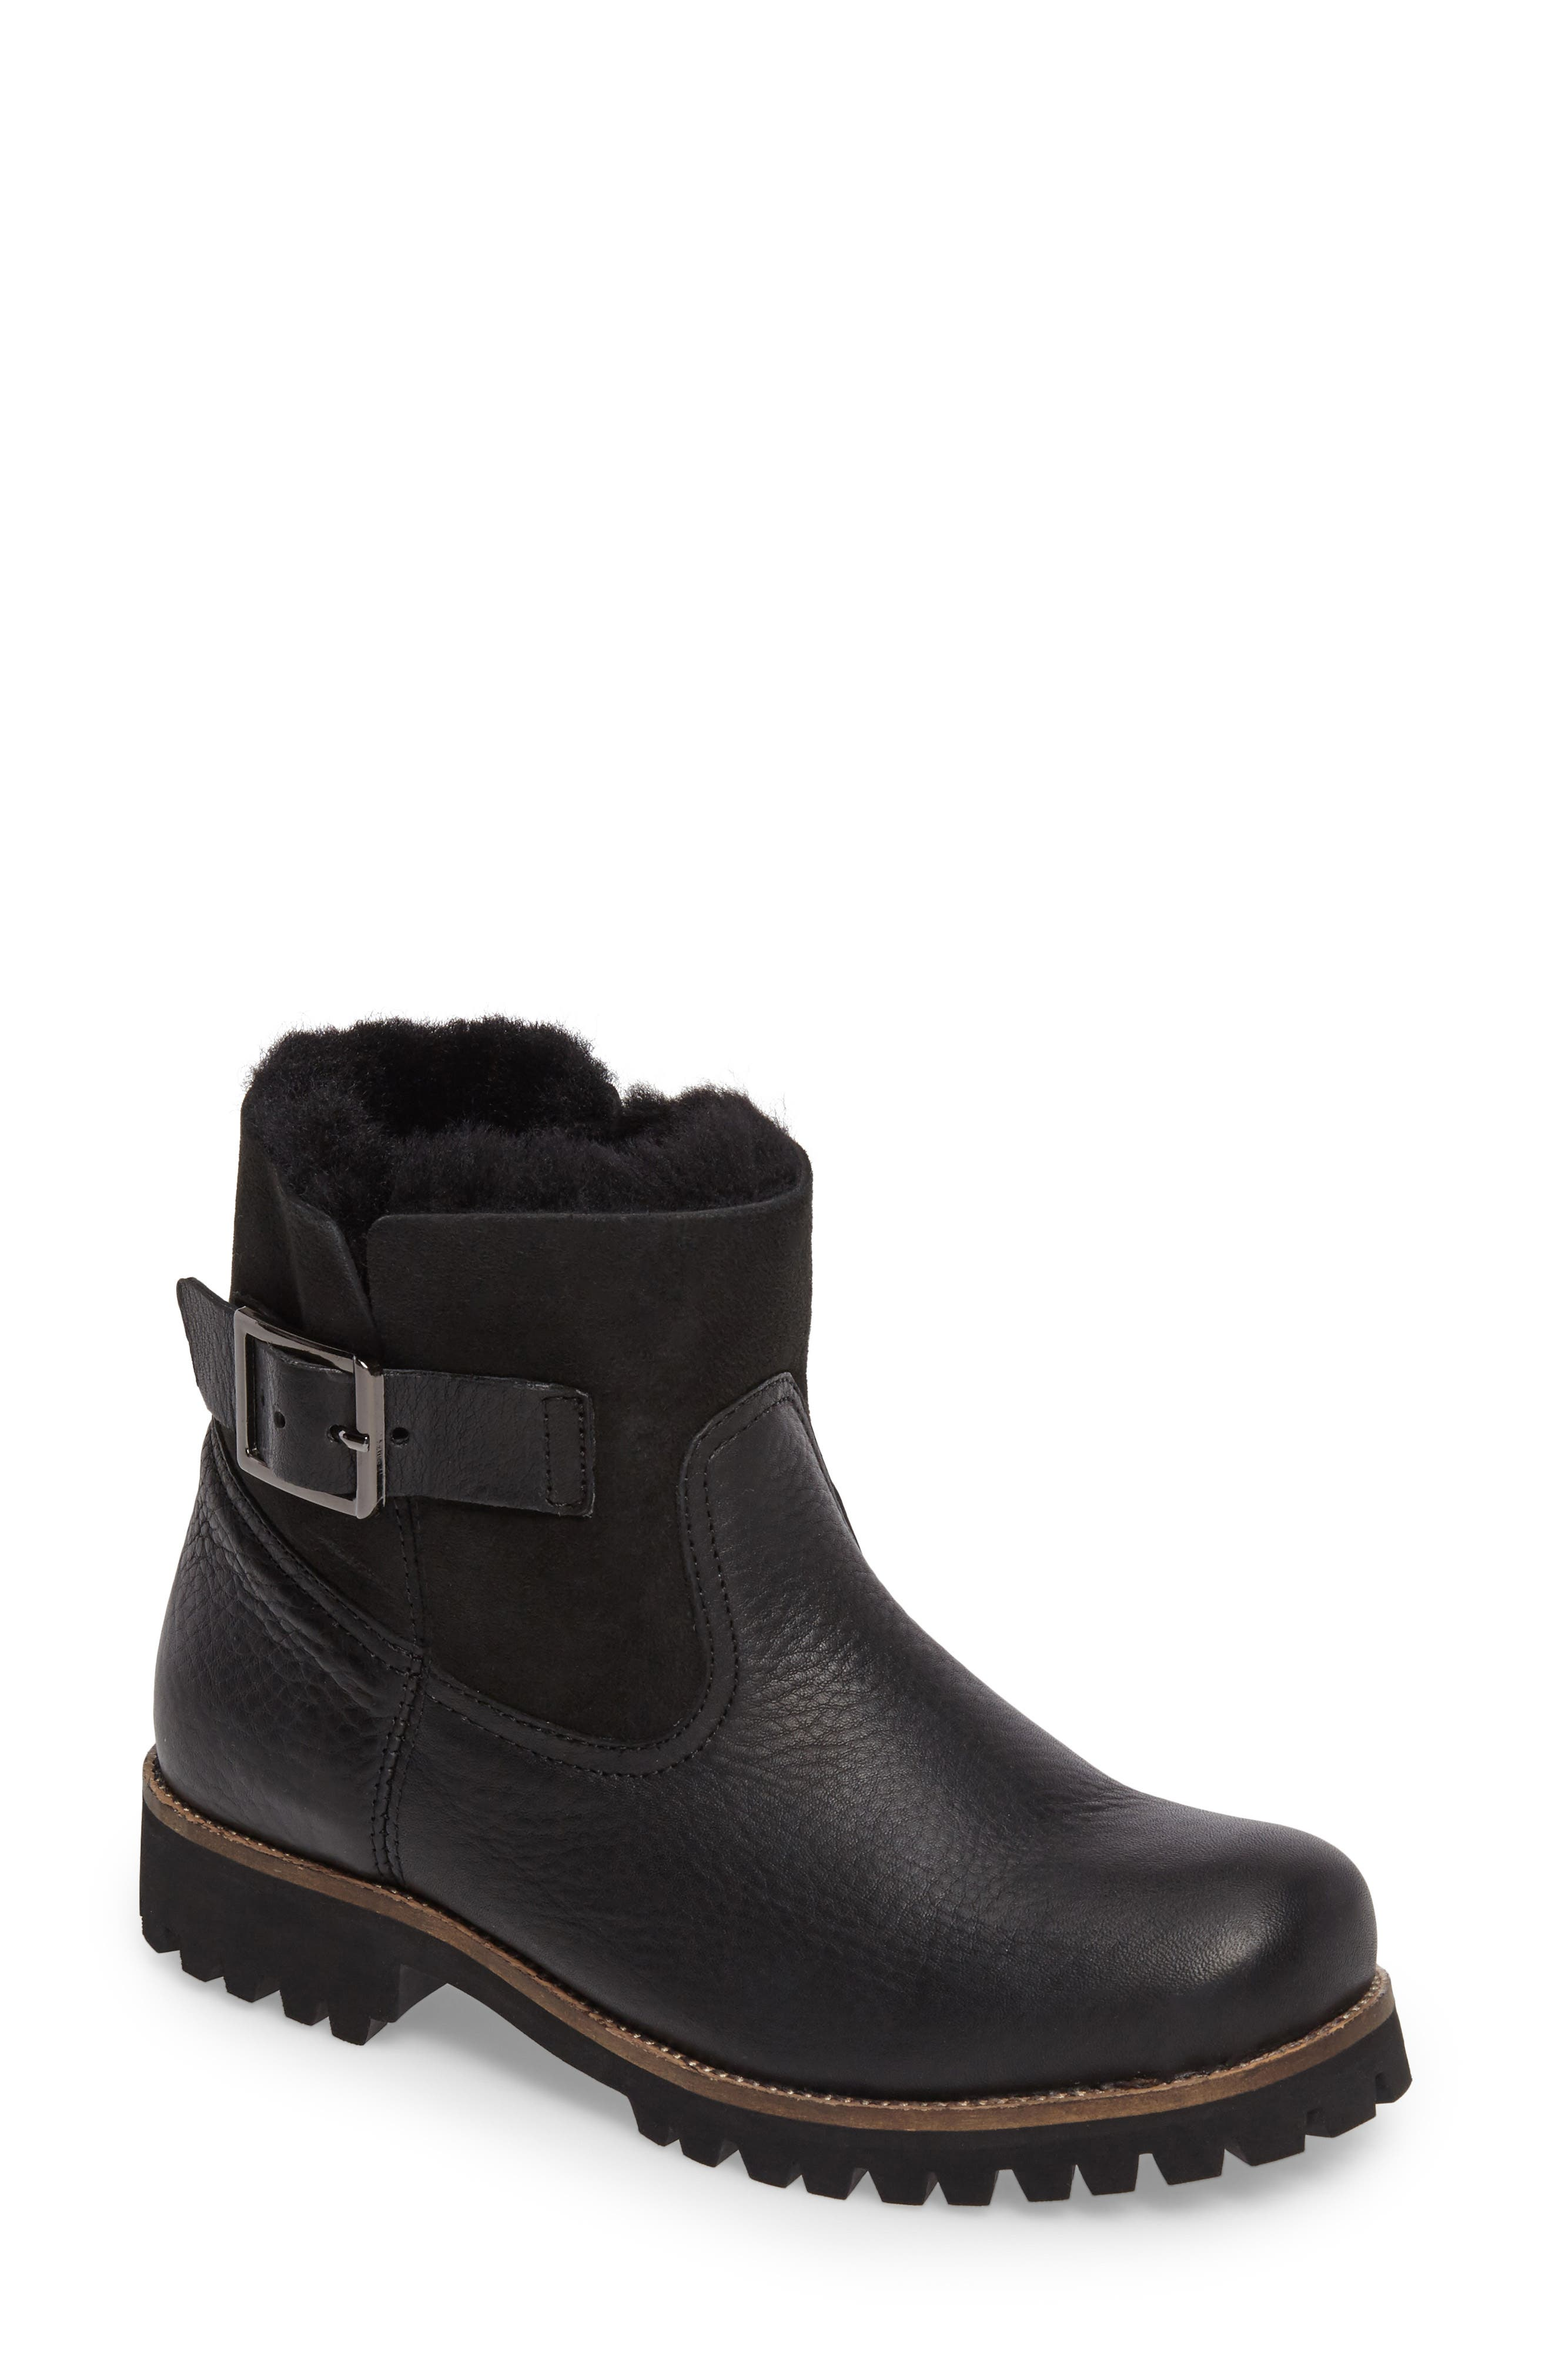 OL06 Genuine Shearling Lined Bootie,                         Main,                         color, Black Leather